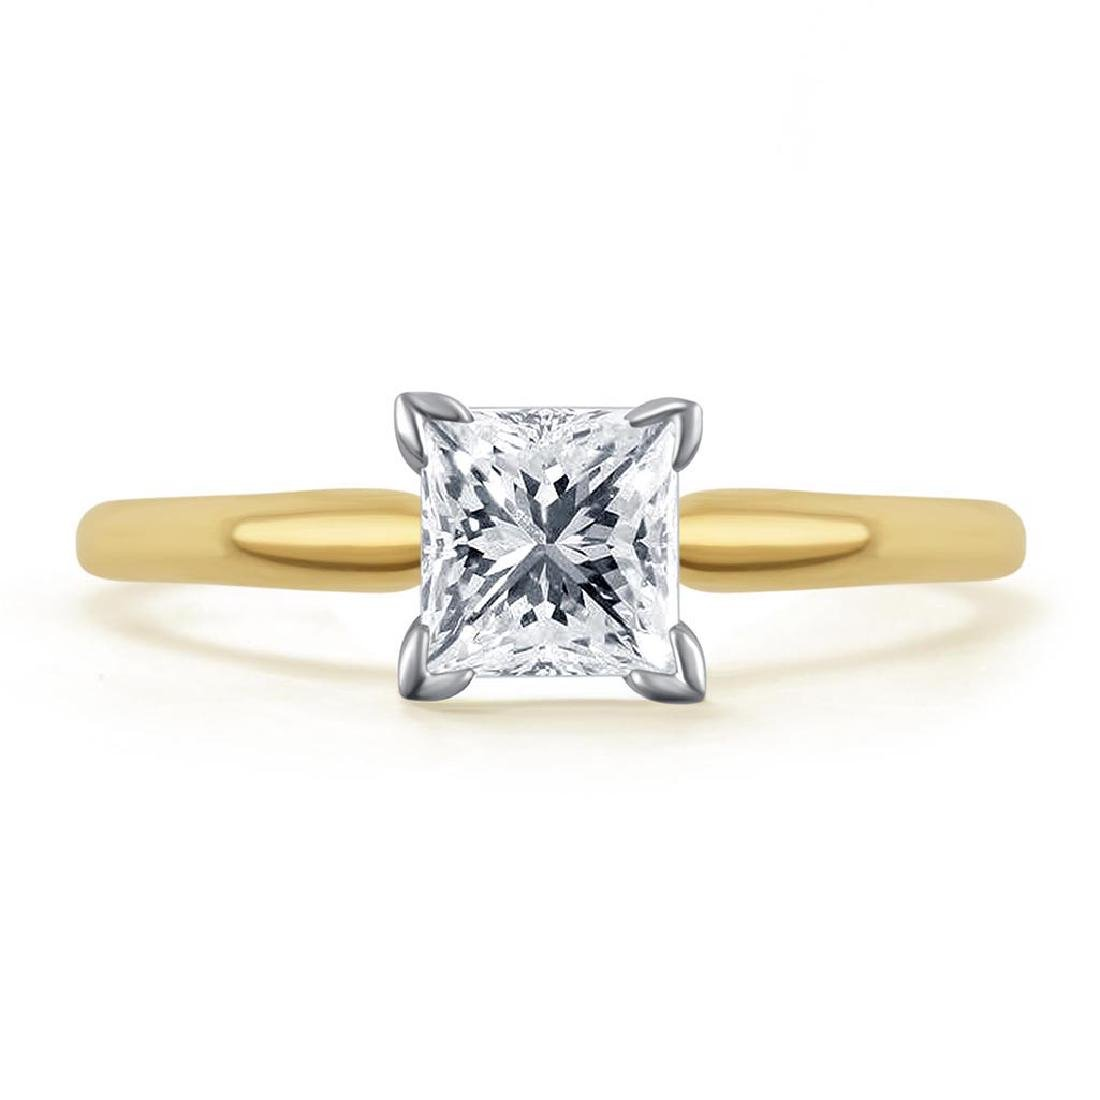 CERTIFIED 0.95 CTW PRINCESS J/SI1 SOLITAIRE RING IN 14K